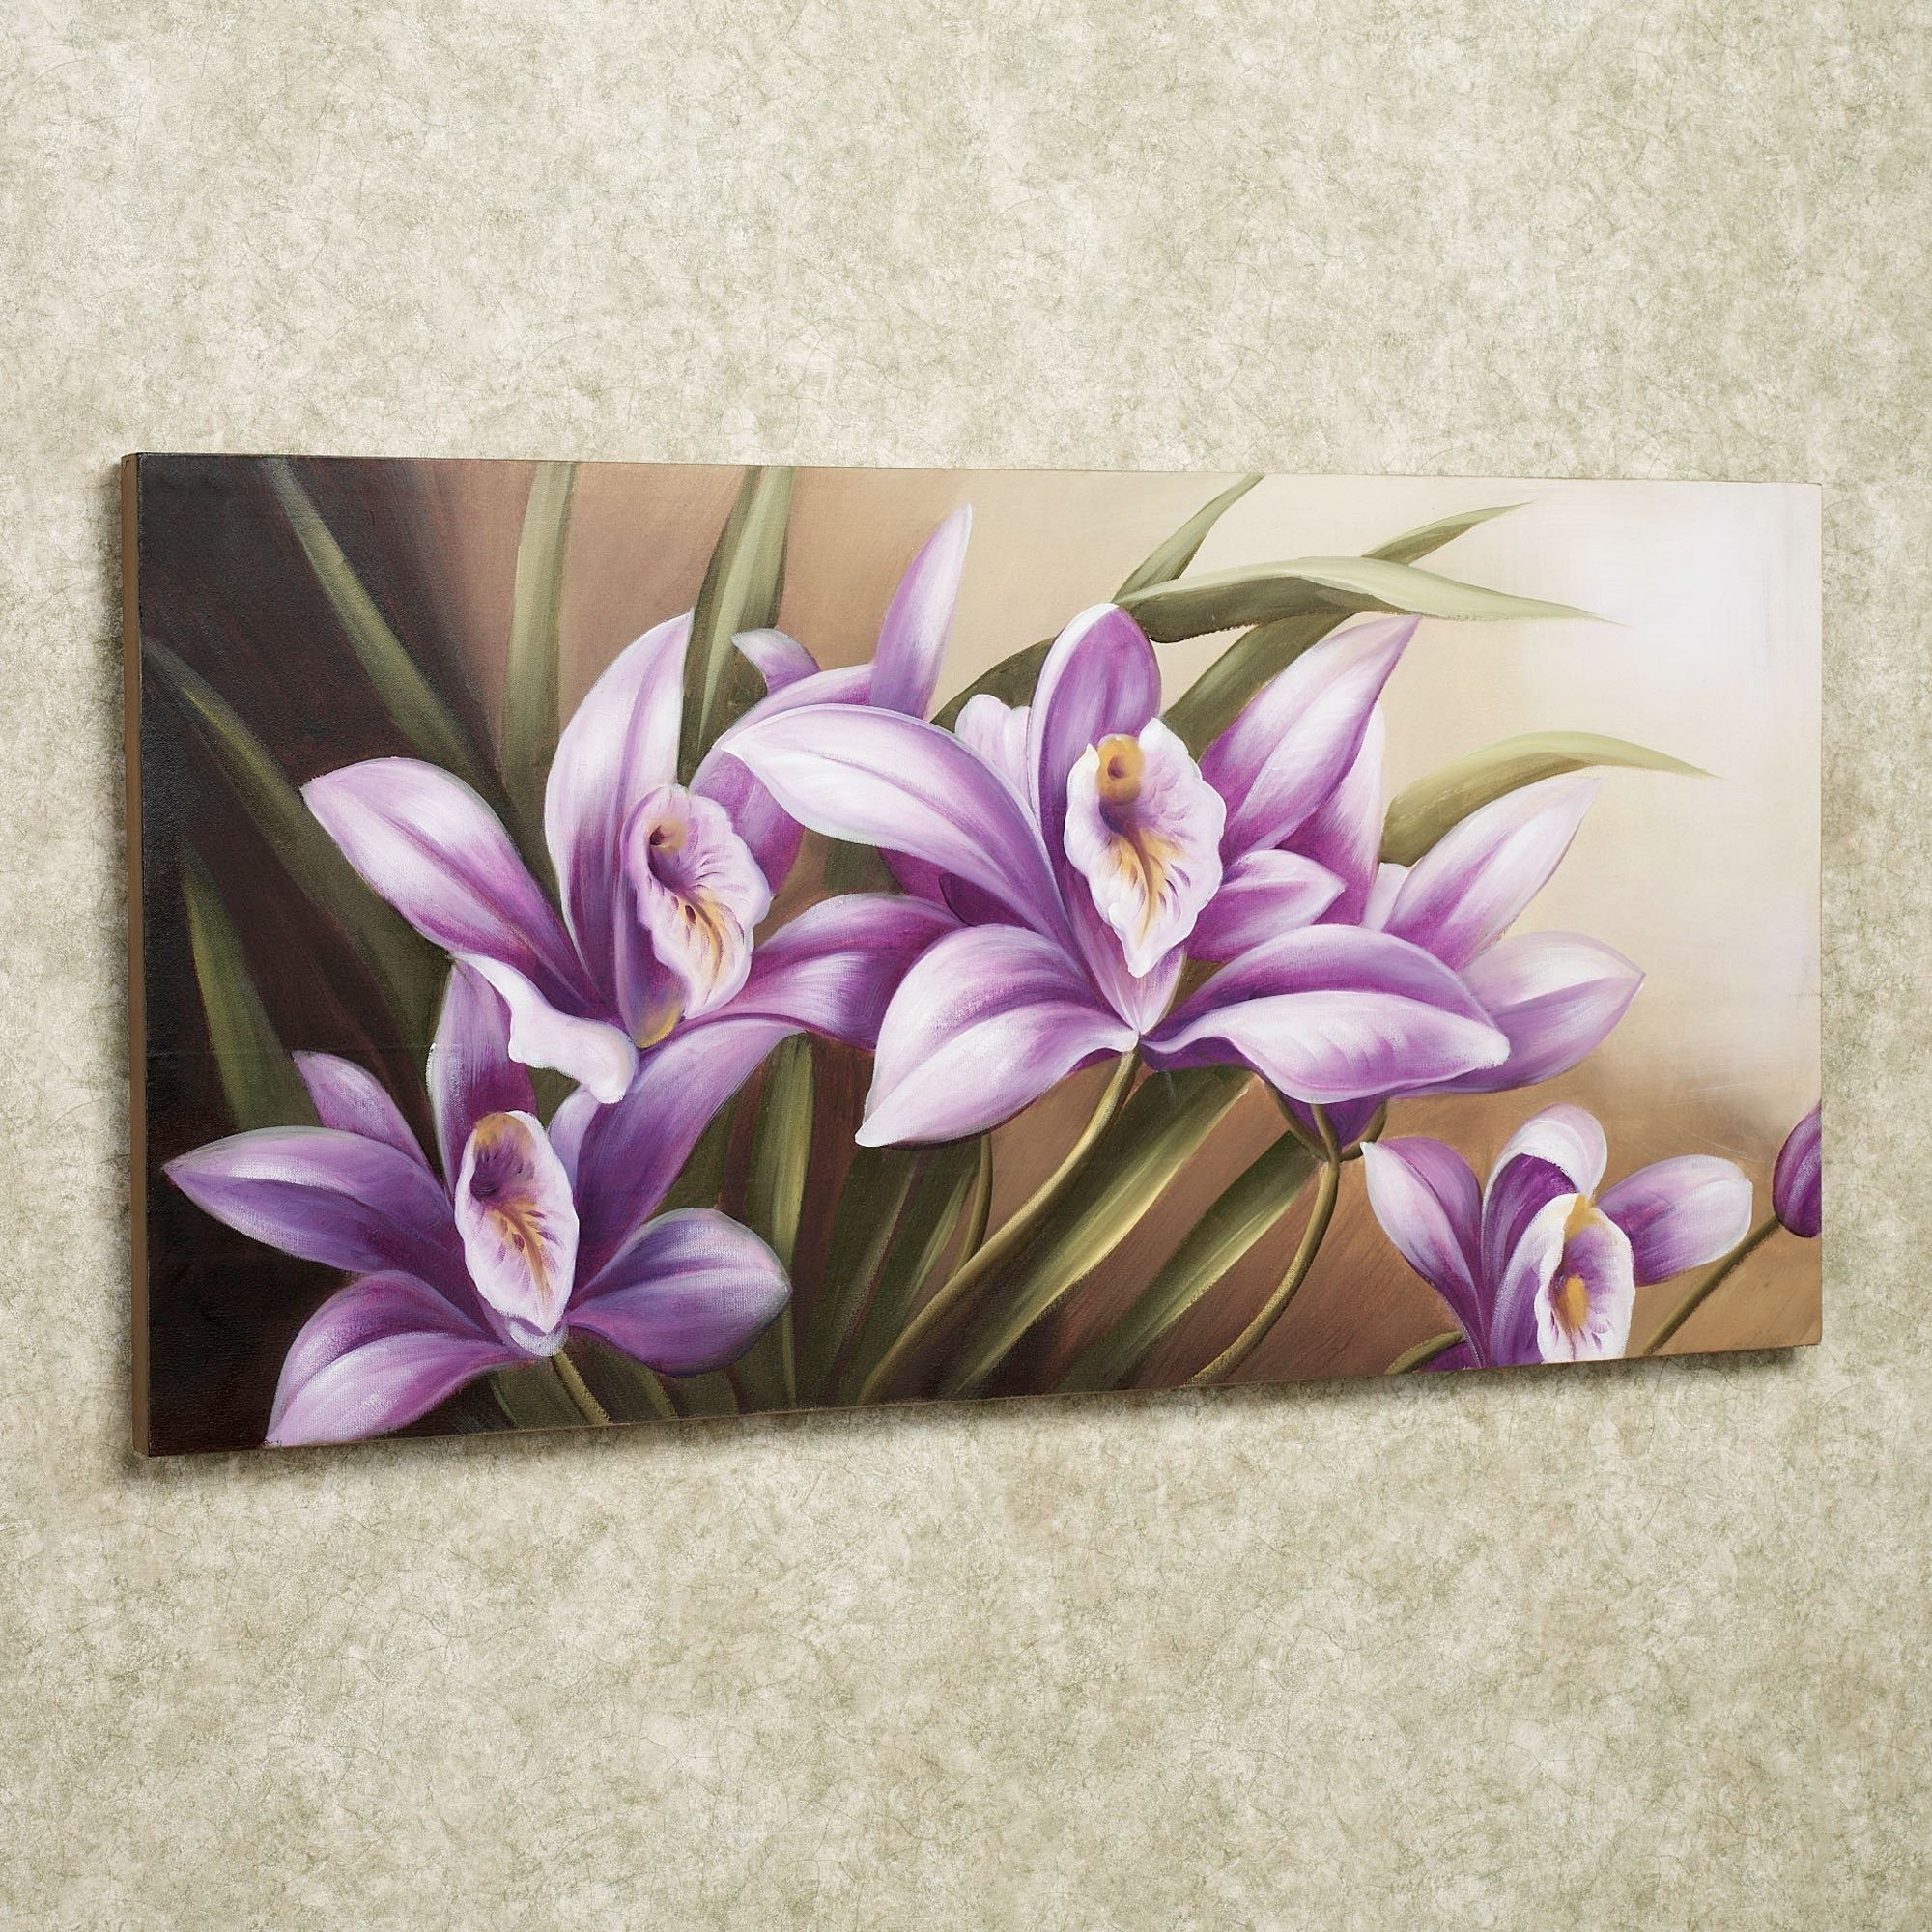 Wild Orchid Handpainted Floral Canvas Wall Art Throughout Most Recently Released Floral Wall Art (Gallery 6 of 20)